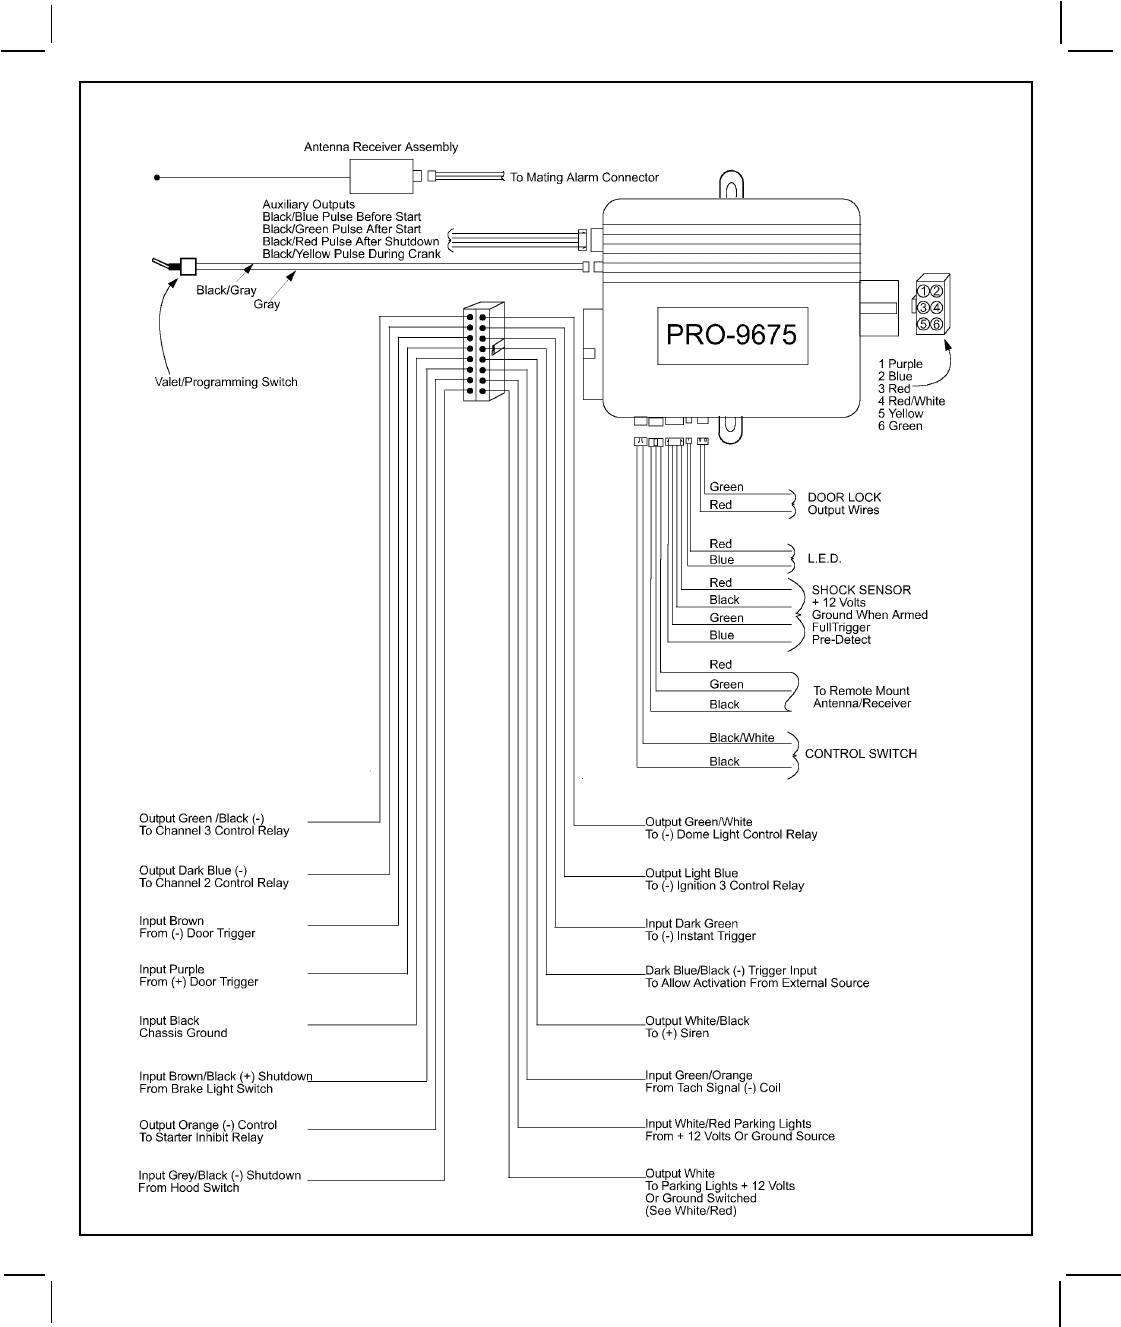 63de61ef f929 4813 ac08 919f46a5cd26 bg16 page 22 of audiovox automobile alarm pro 9675ft user guide audiovox wiring diagrams at edmiracle.co